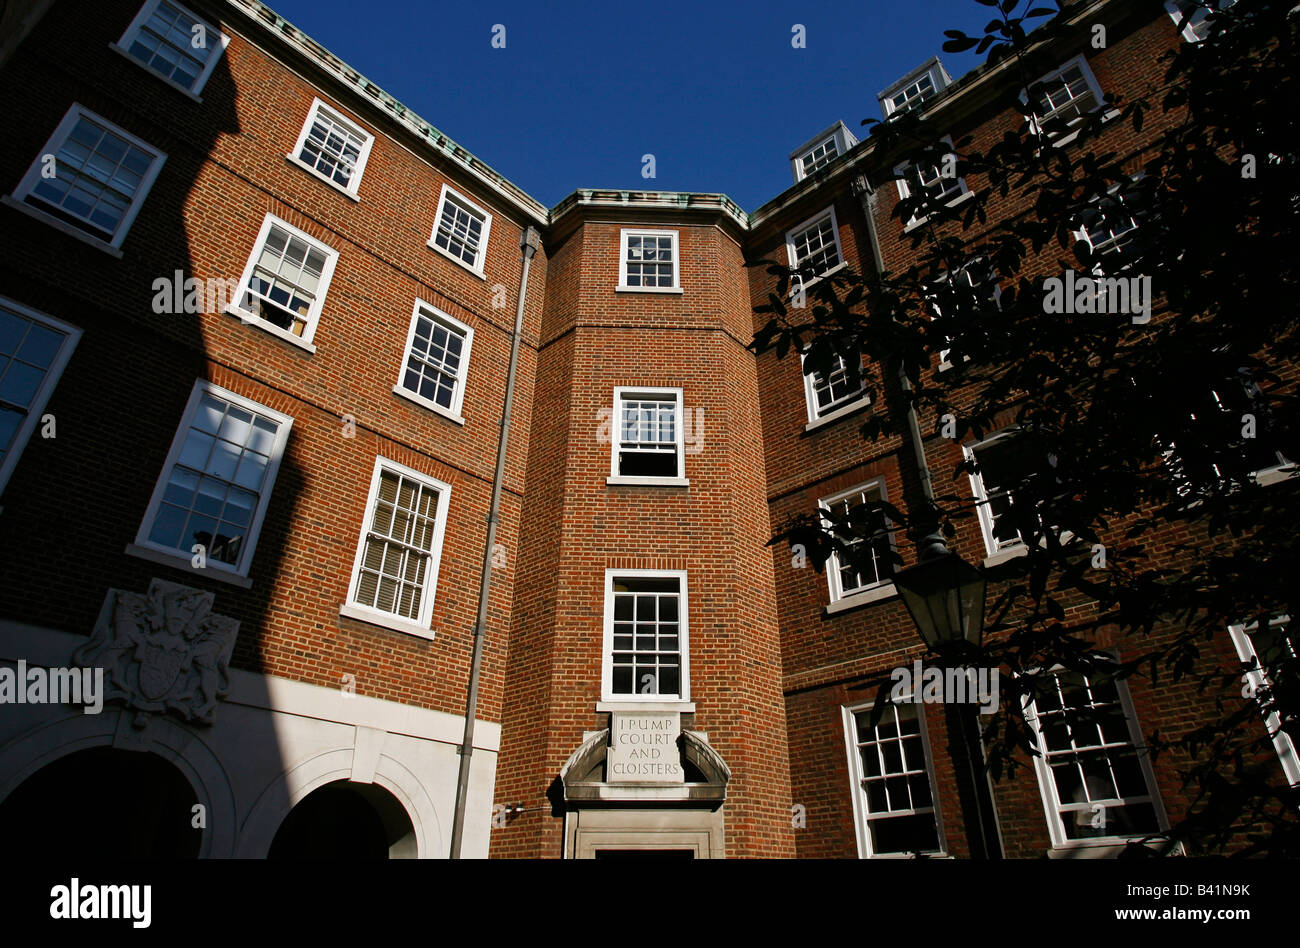 1 Pump Court and Cloisters London England UK - Stock Image